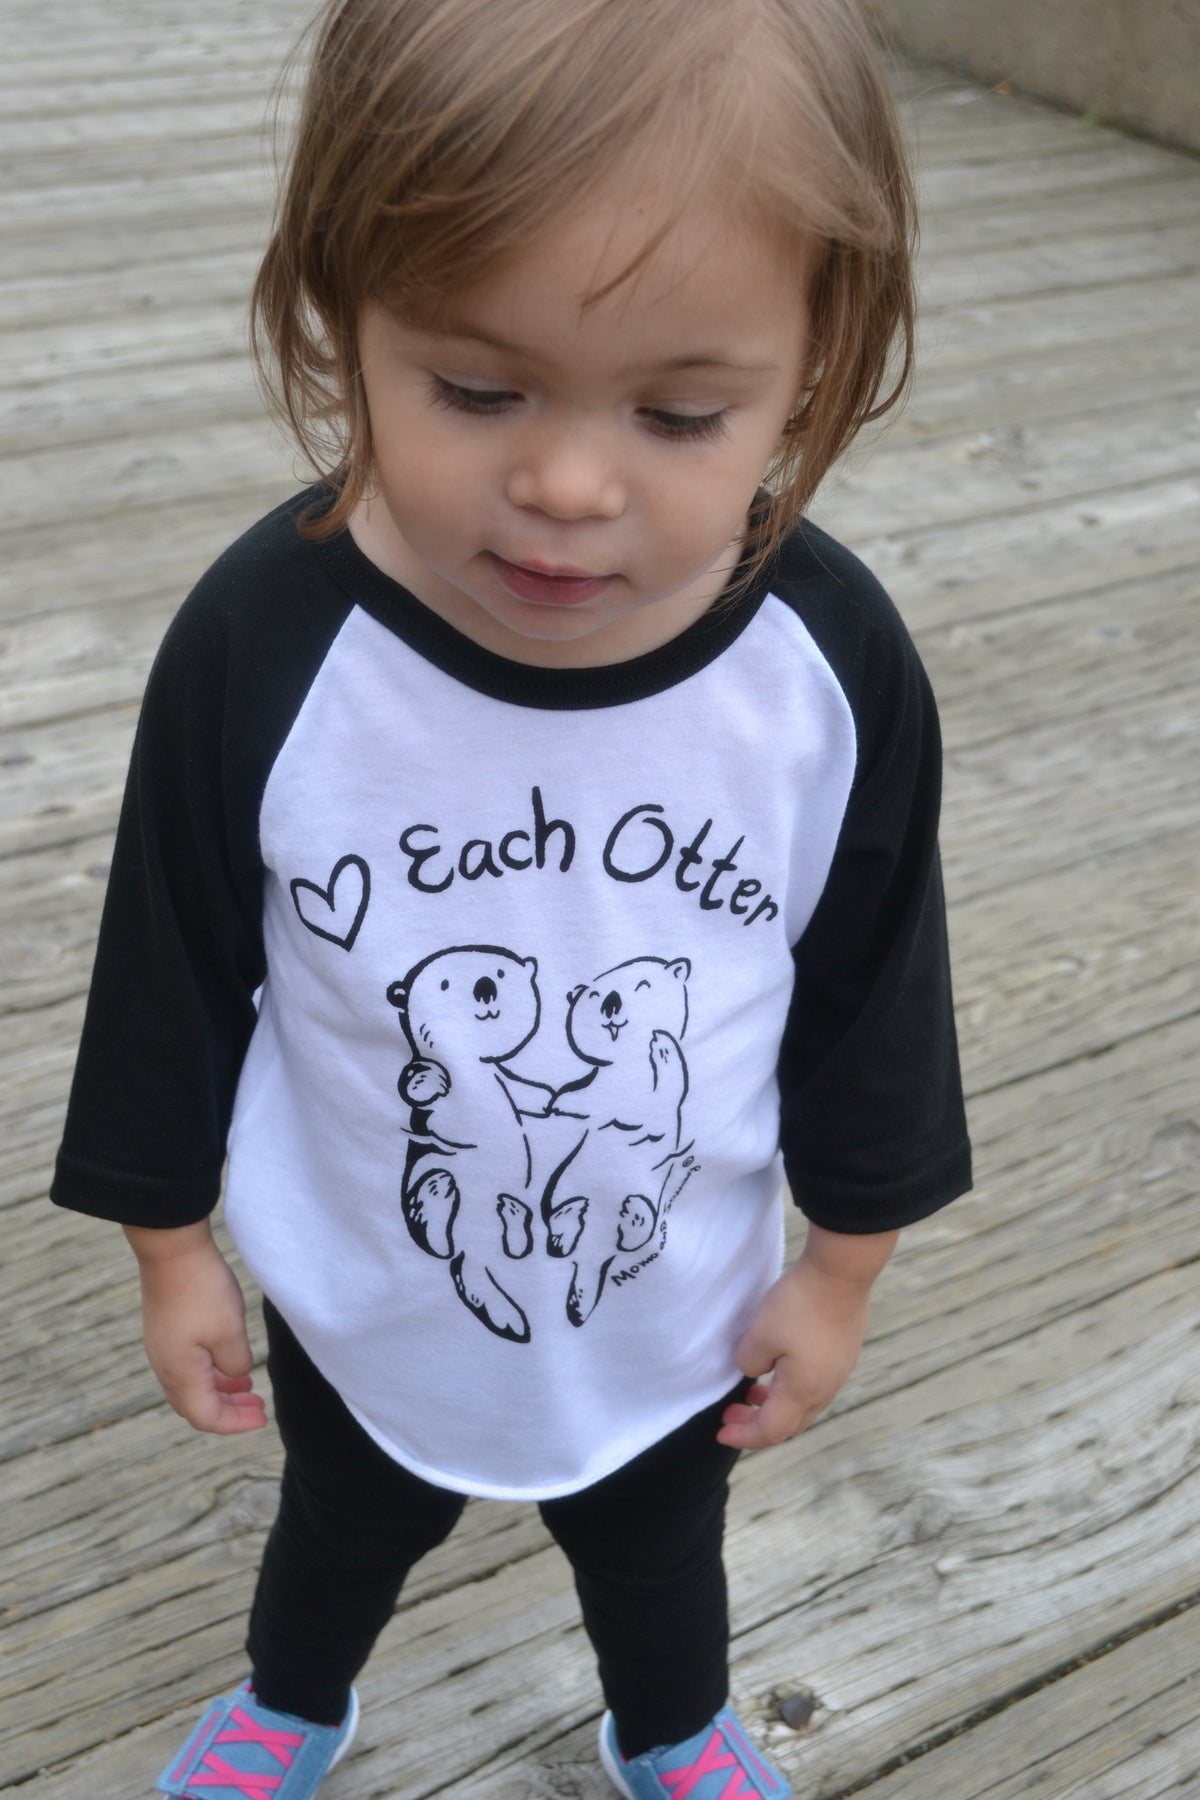 Modern, unisex kids tee - Love Each Otter